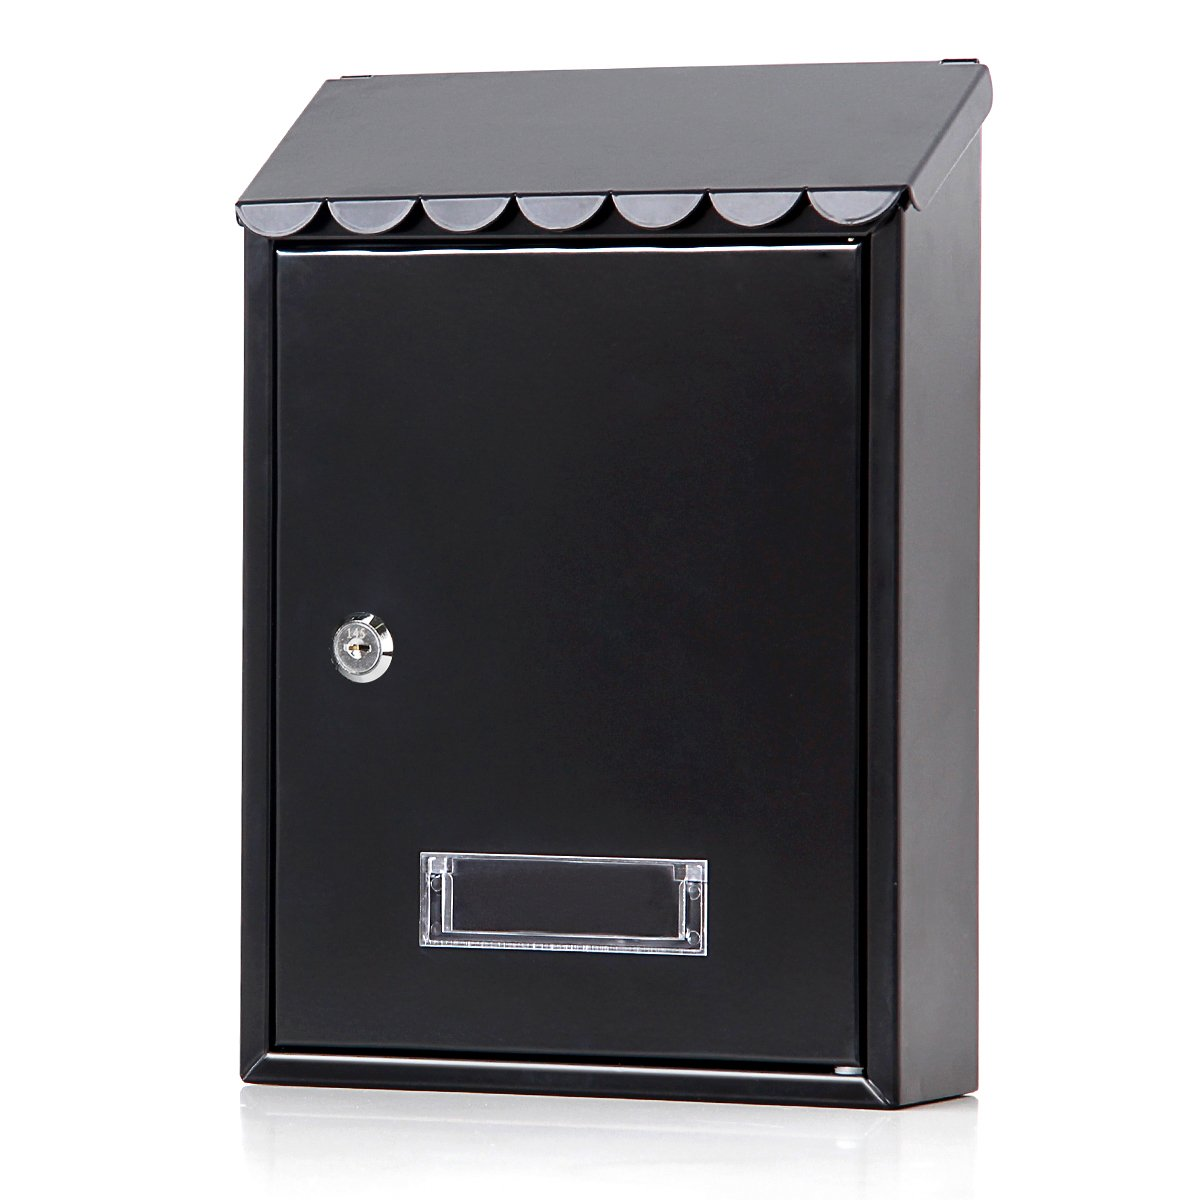 Mailboxes Wall Mount with Key Lock – Jssmst Small Mail Boxes Horizontal, 12.2 x 8.4 x 3.3 Inch, Black, SM-3301L